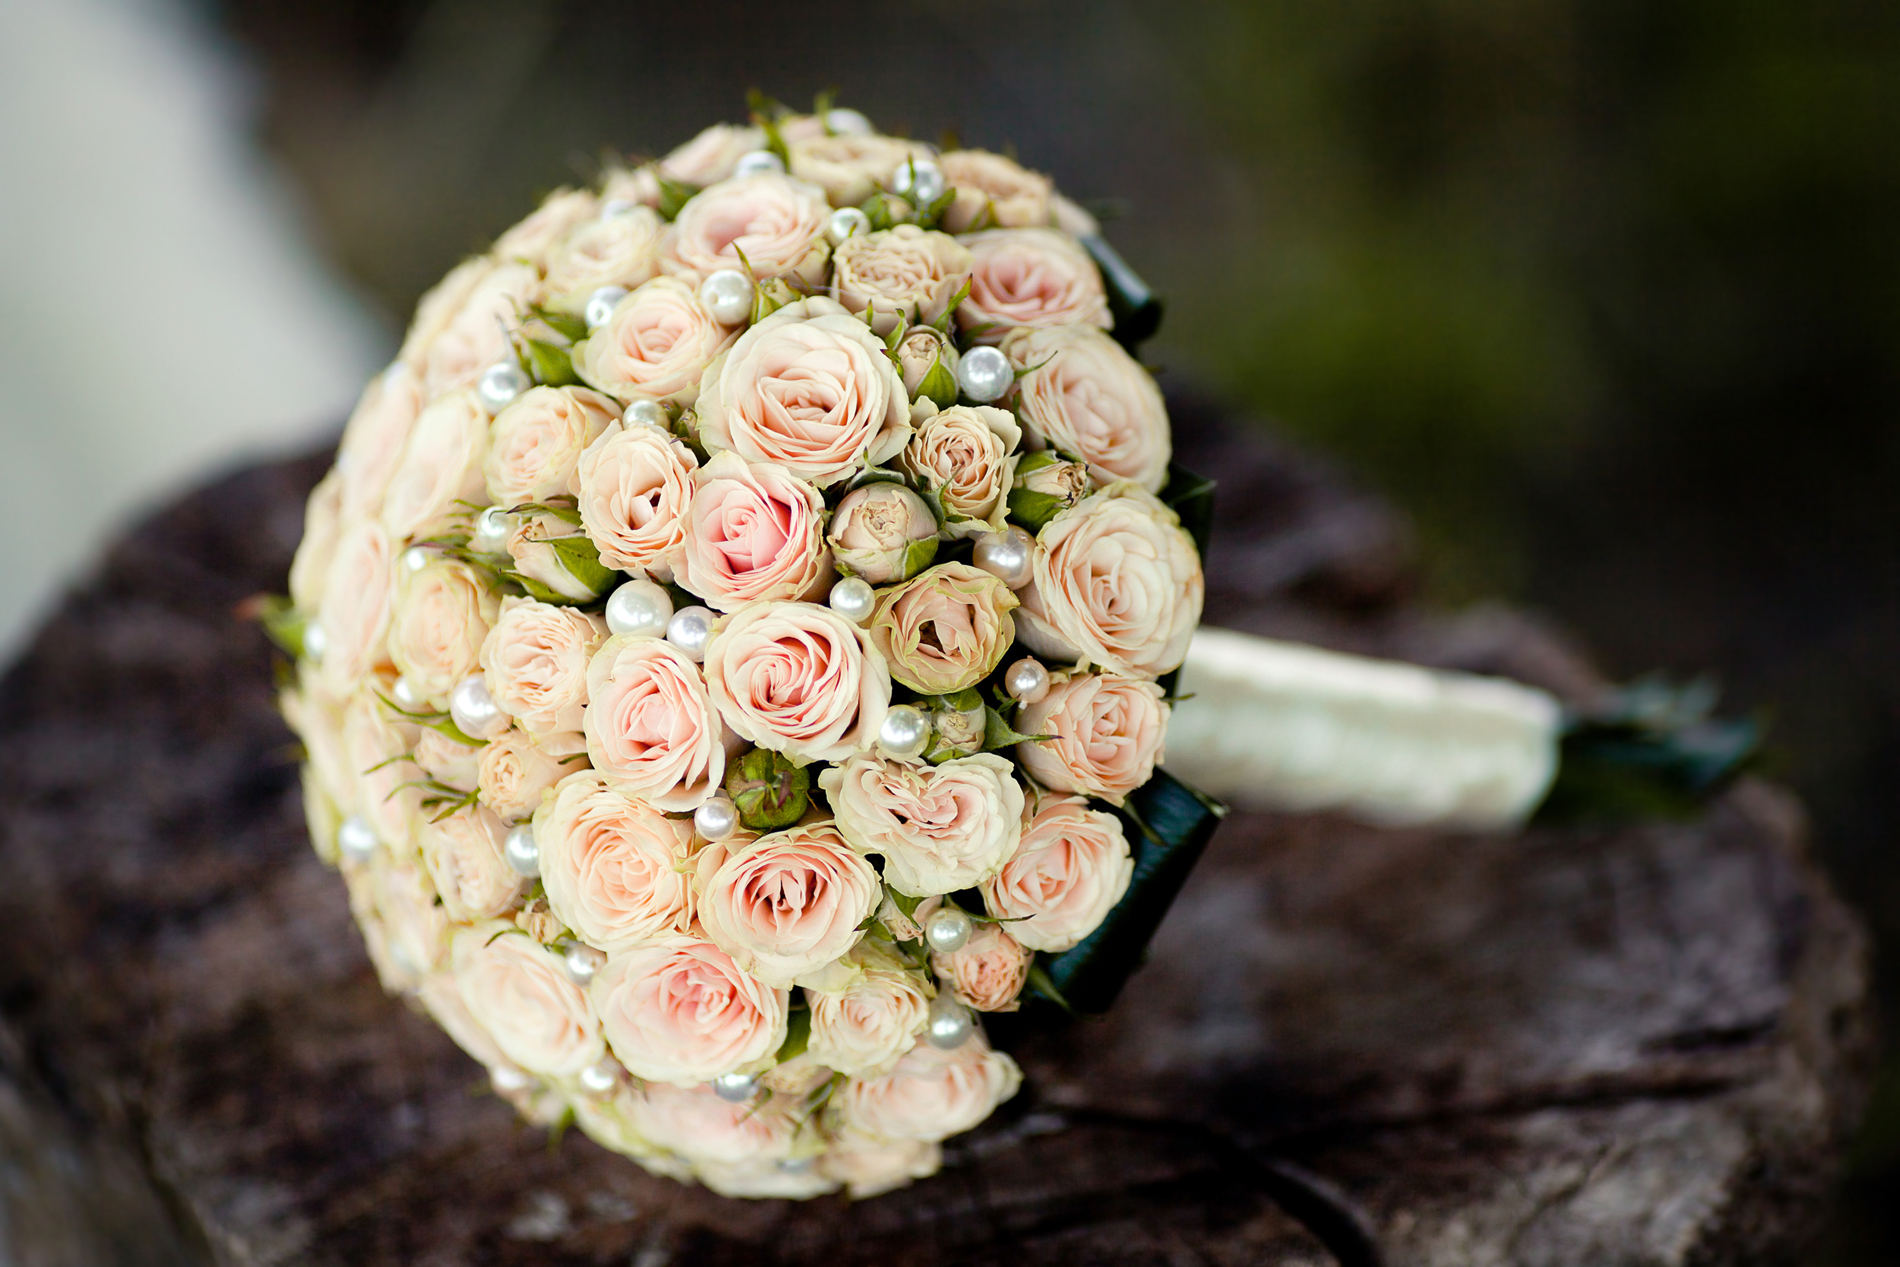 Pearly rose bouquet 53433